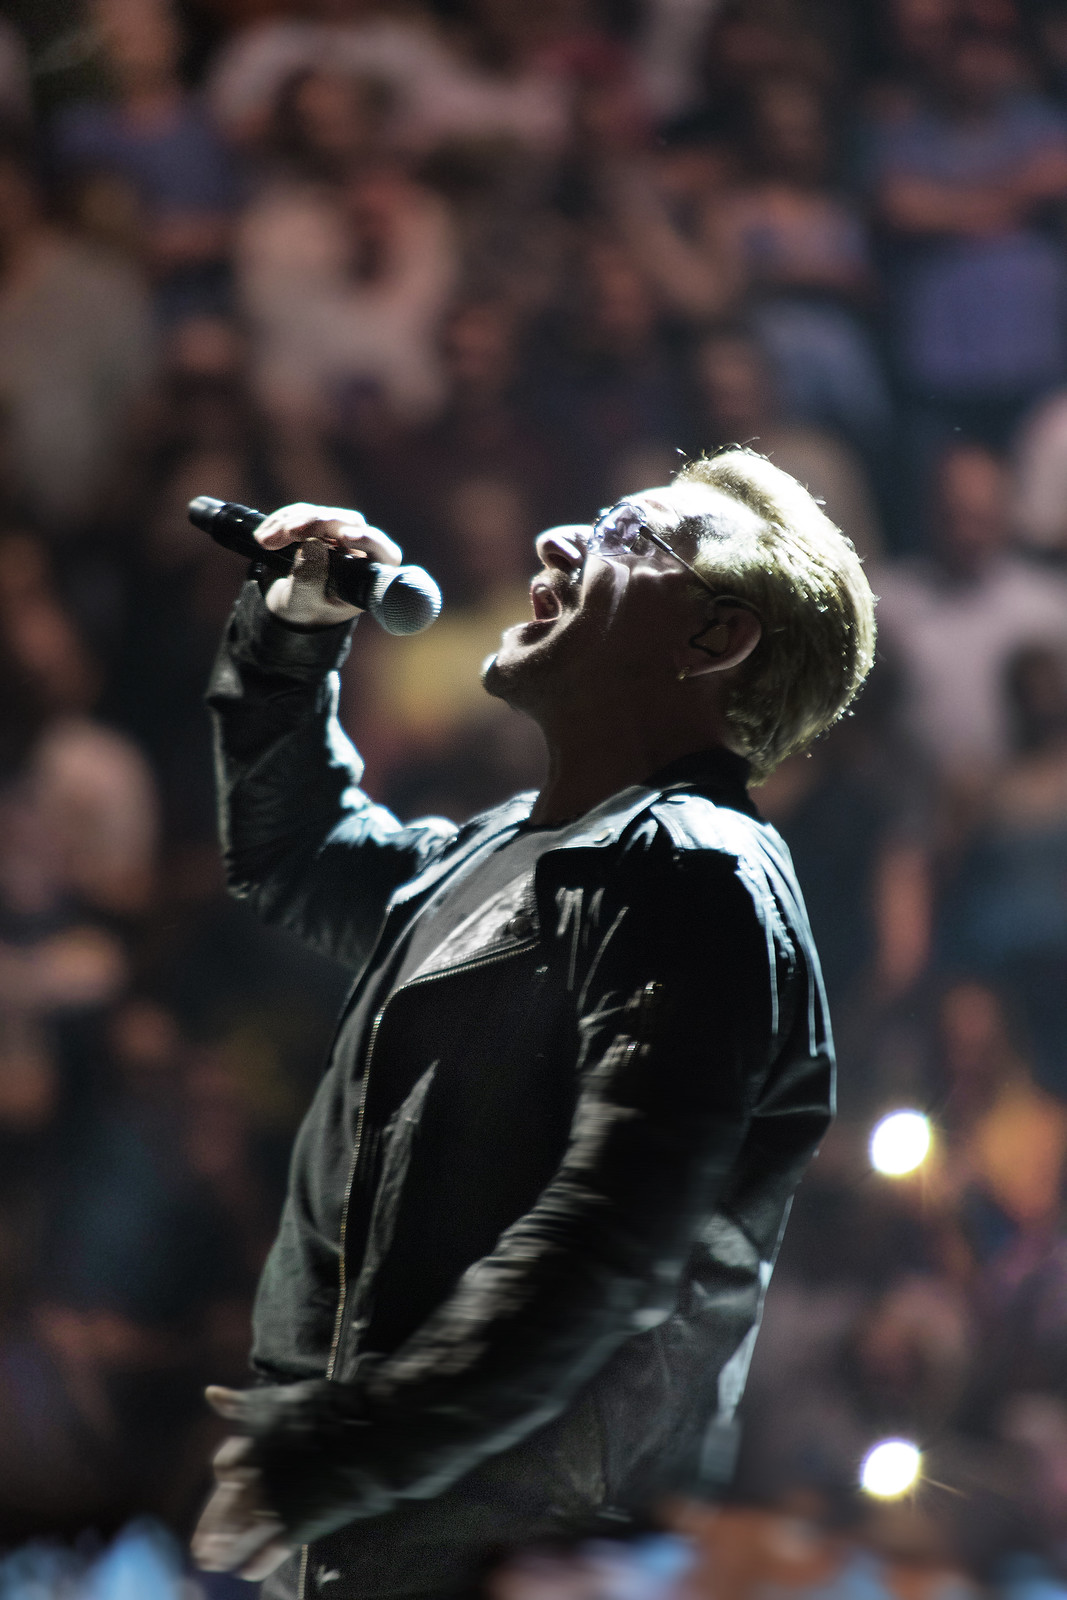 U2 Denver 2015 by Aimee Giese